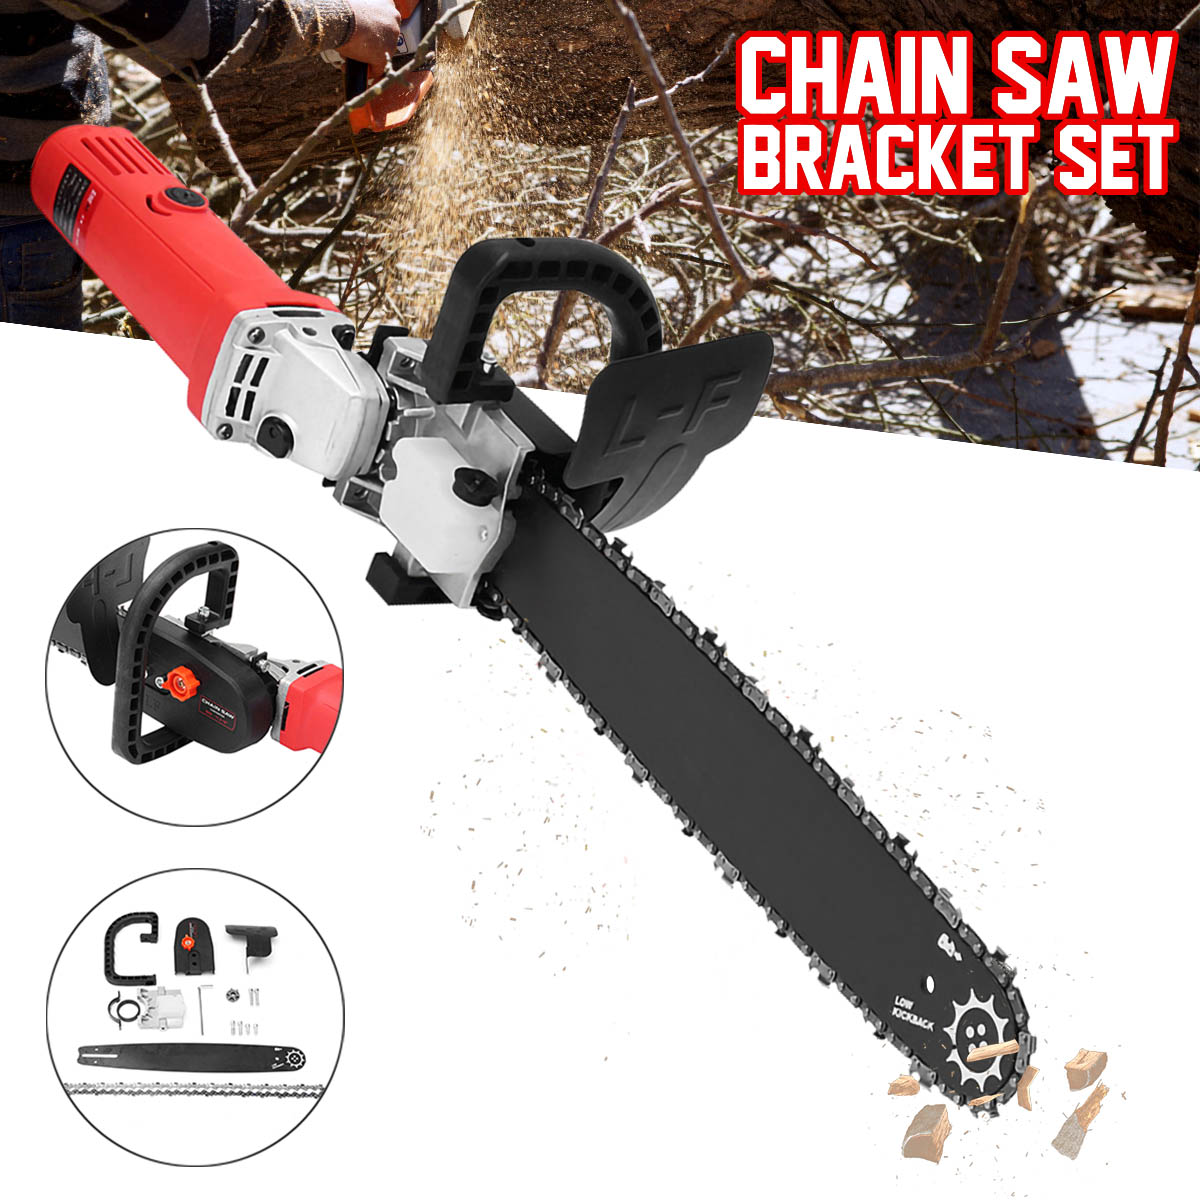 Upgrade Electric Saw Parts 16 Inch M10 Chainsaw Bracket Changed 100 Angle Grinder Into Chain Saw Woodworking Power Tool SetUpgrade Electric Saw Parts 16 Inch M10 Chainsaw Bracket Changed 100 Angle Grinder Into Chain Saw Woodworking Power Tool Set